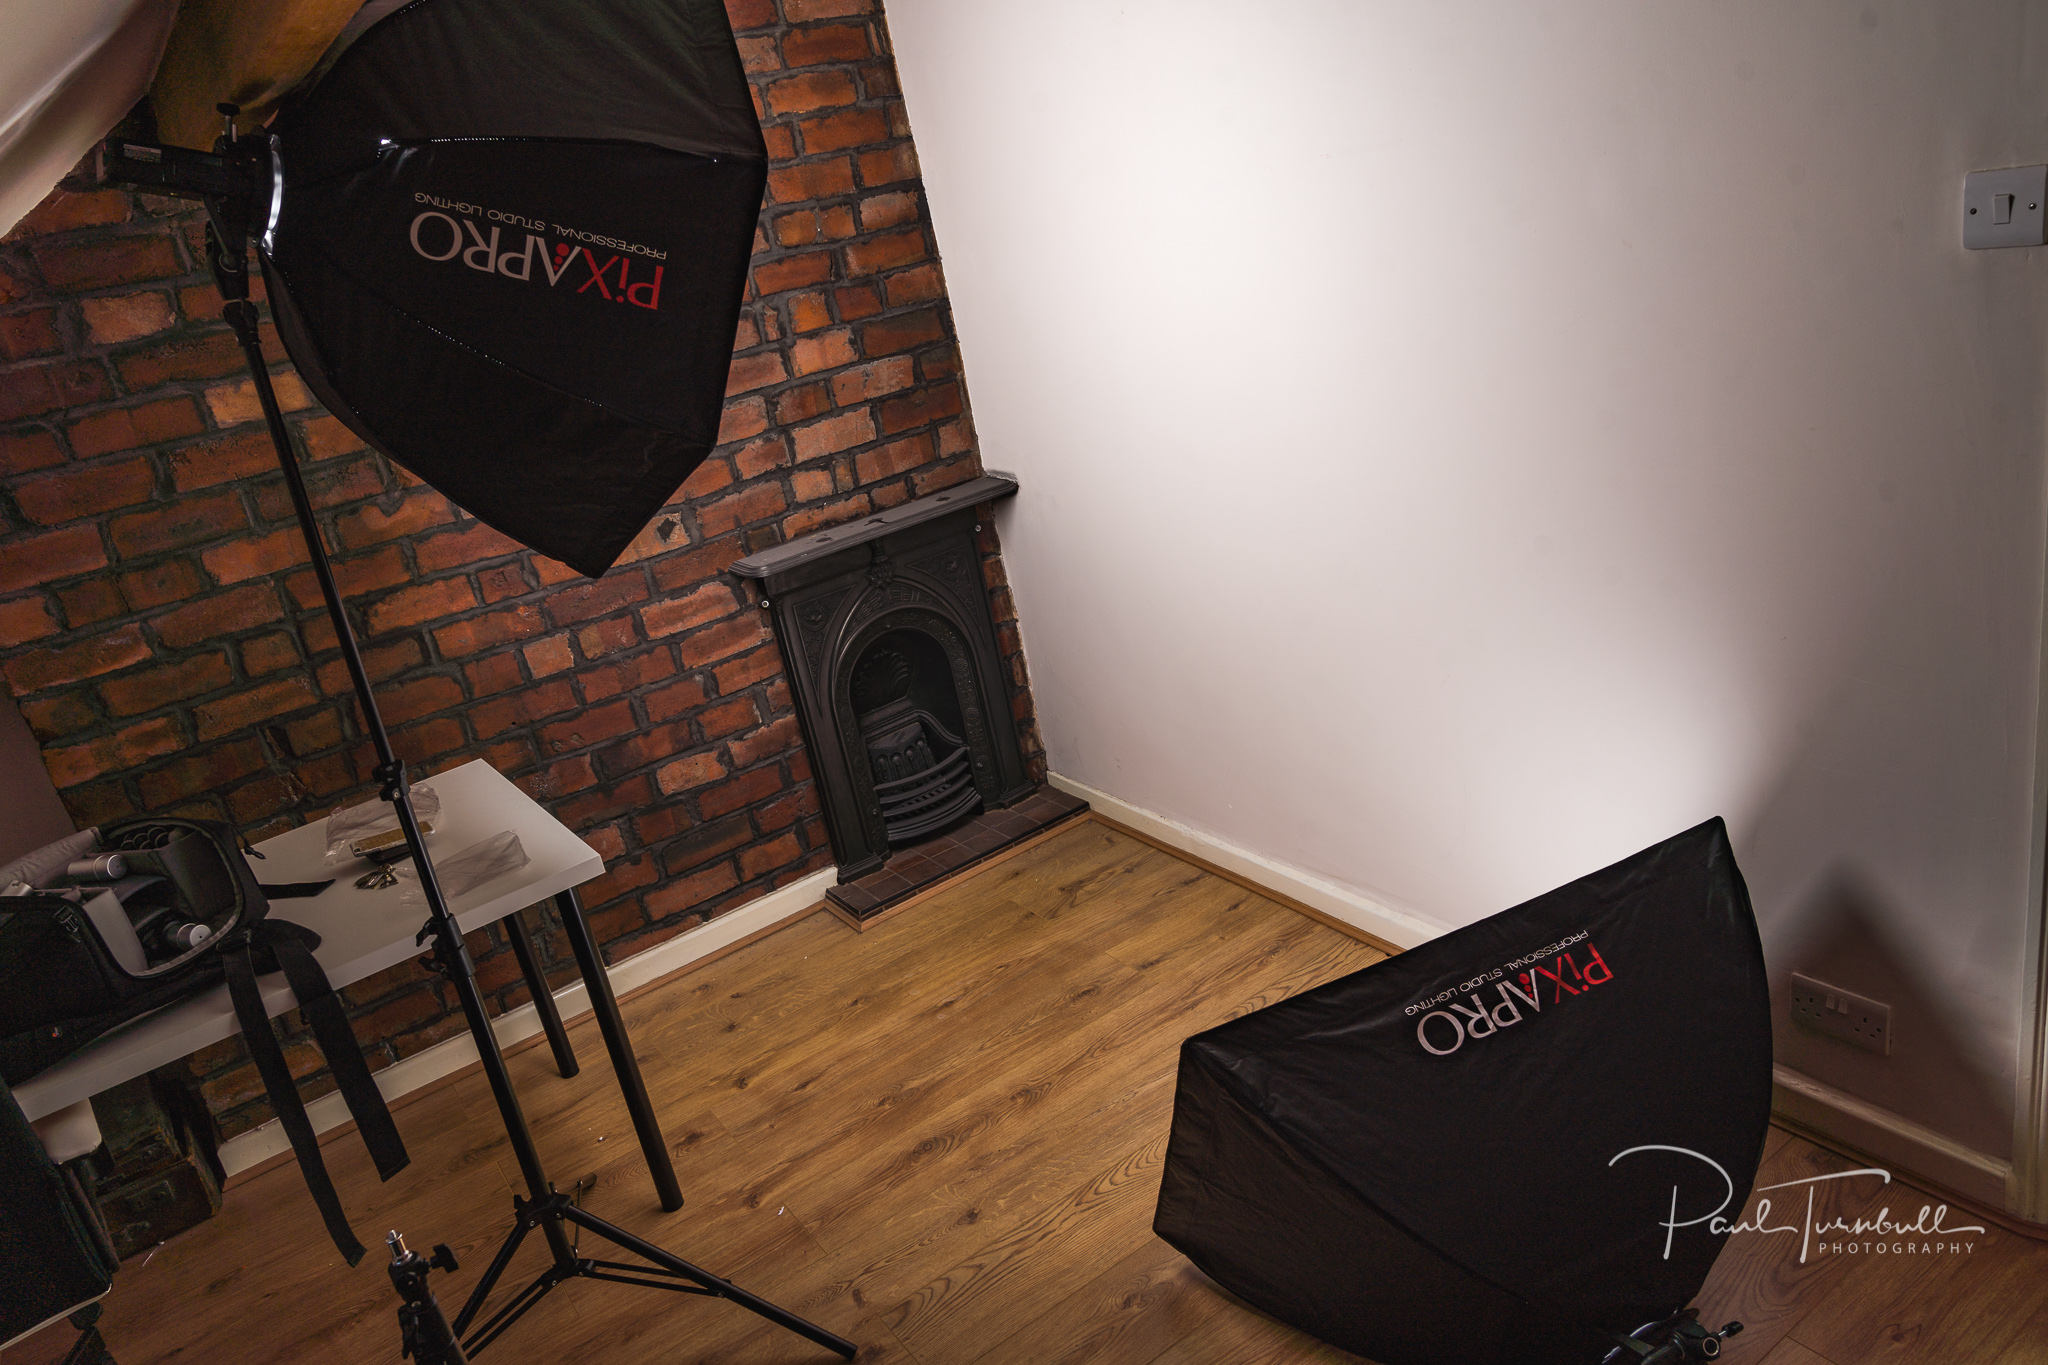 I bring the studio to you with professional quality portable studio lighting